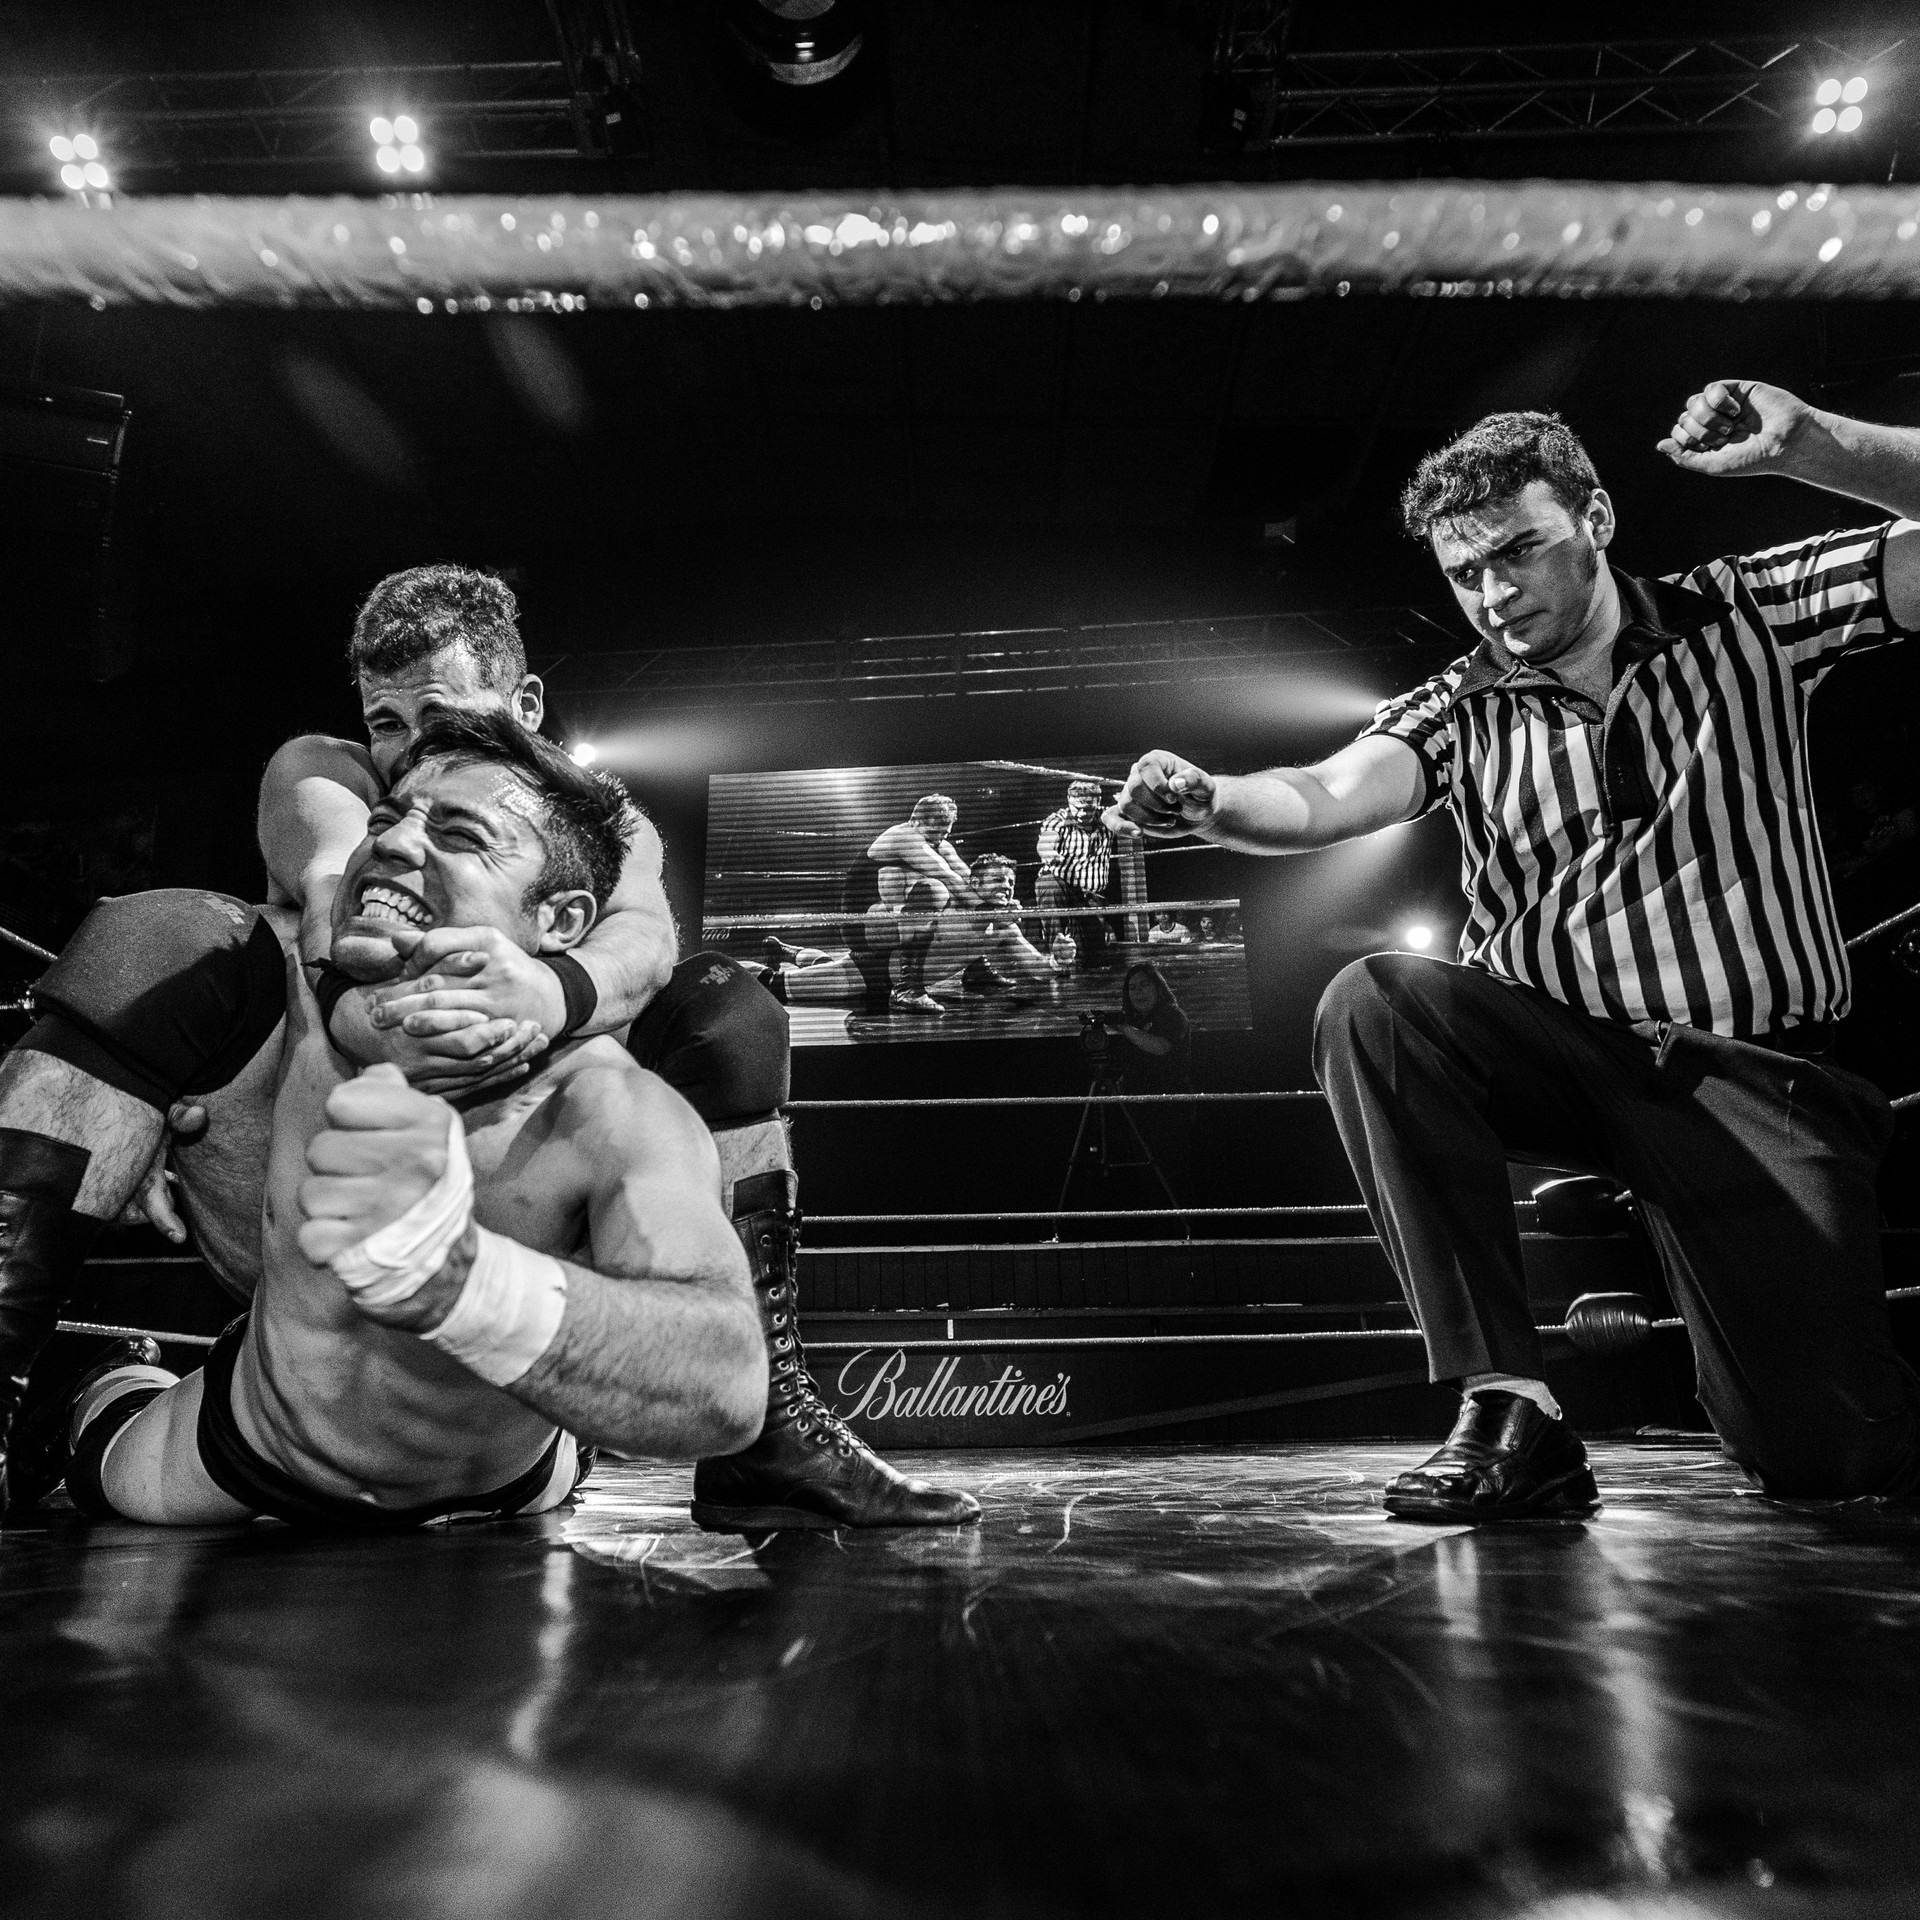 CNL Ring Side -  Pro Wrestling Photography - Fotografía de Lucha Libre